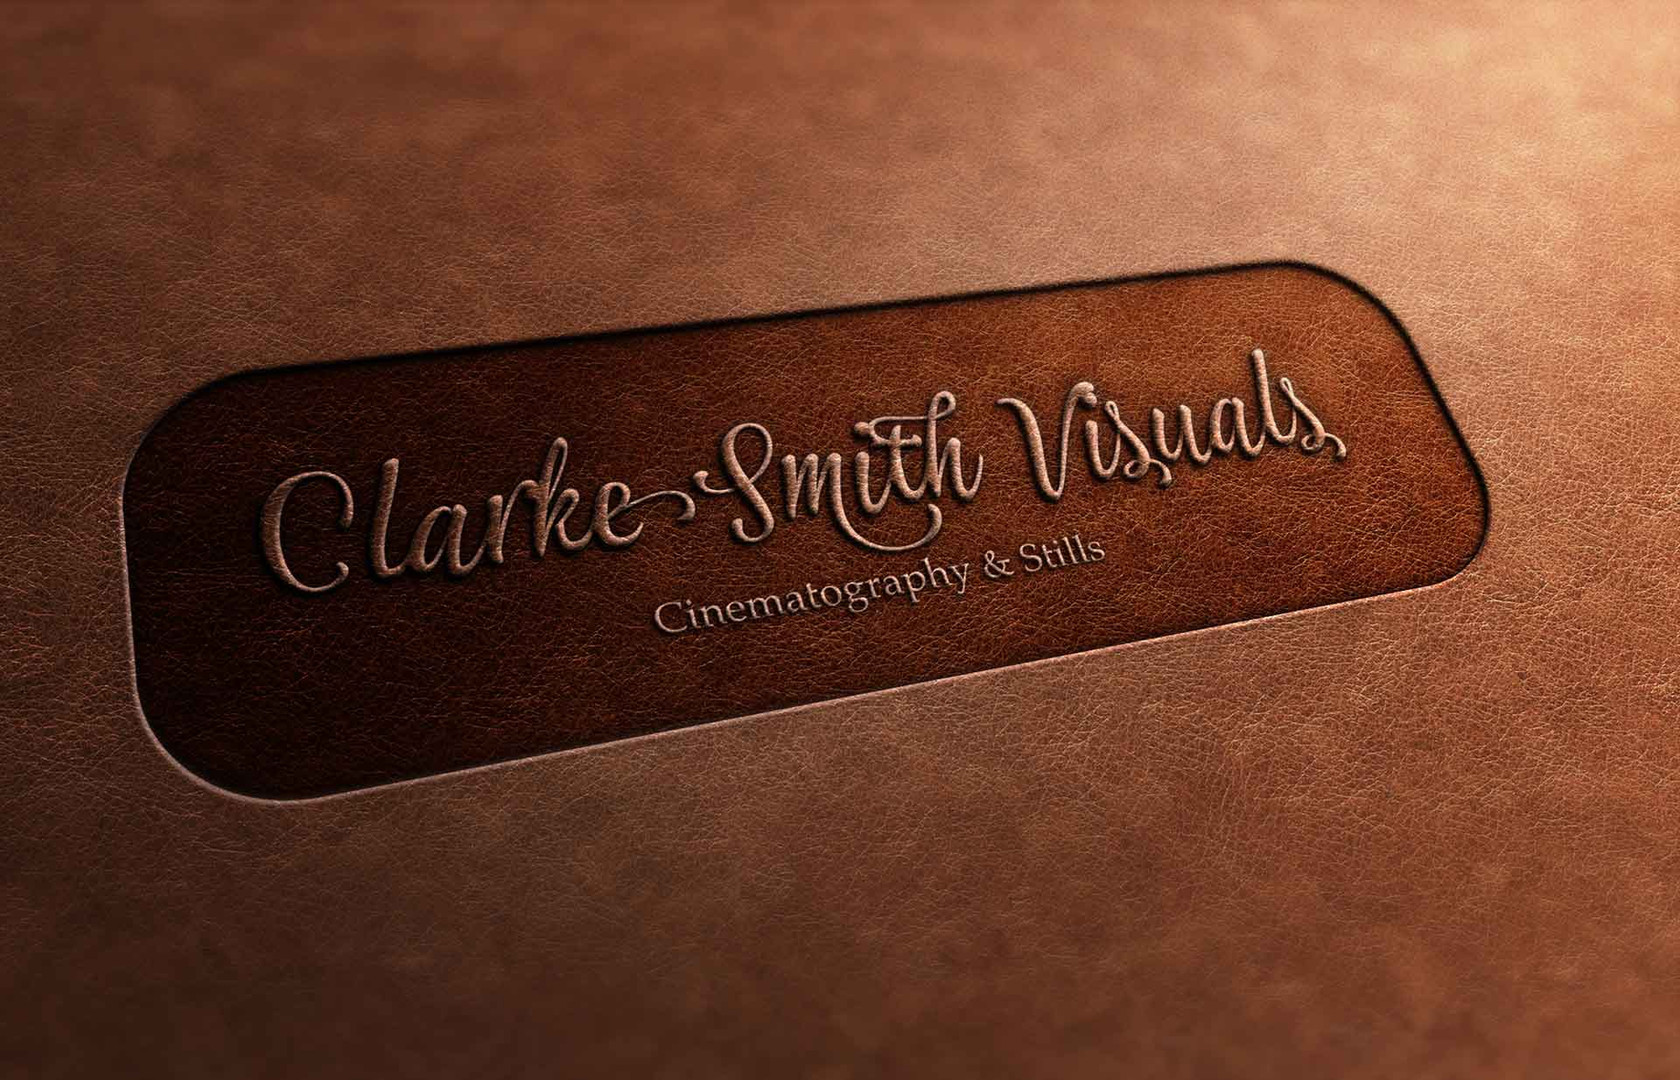 Clarke Smith Visuals Leather Stamped Logo